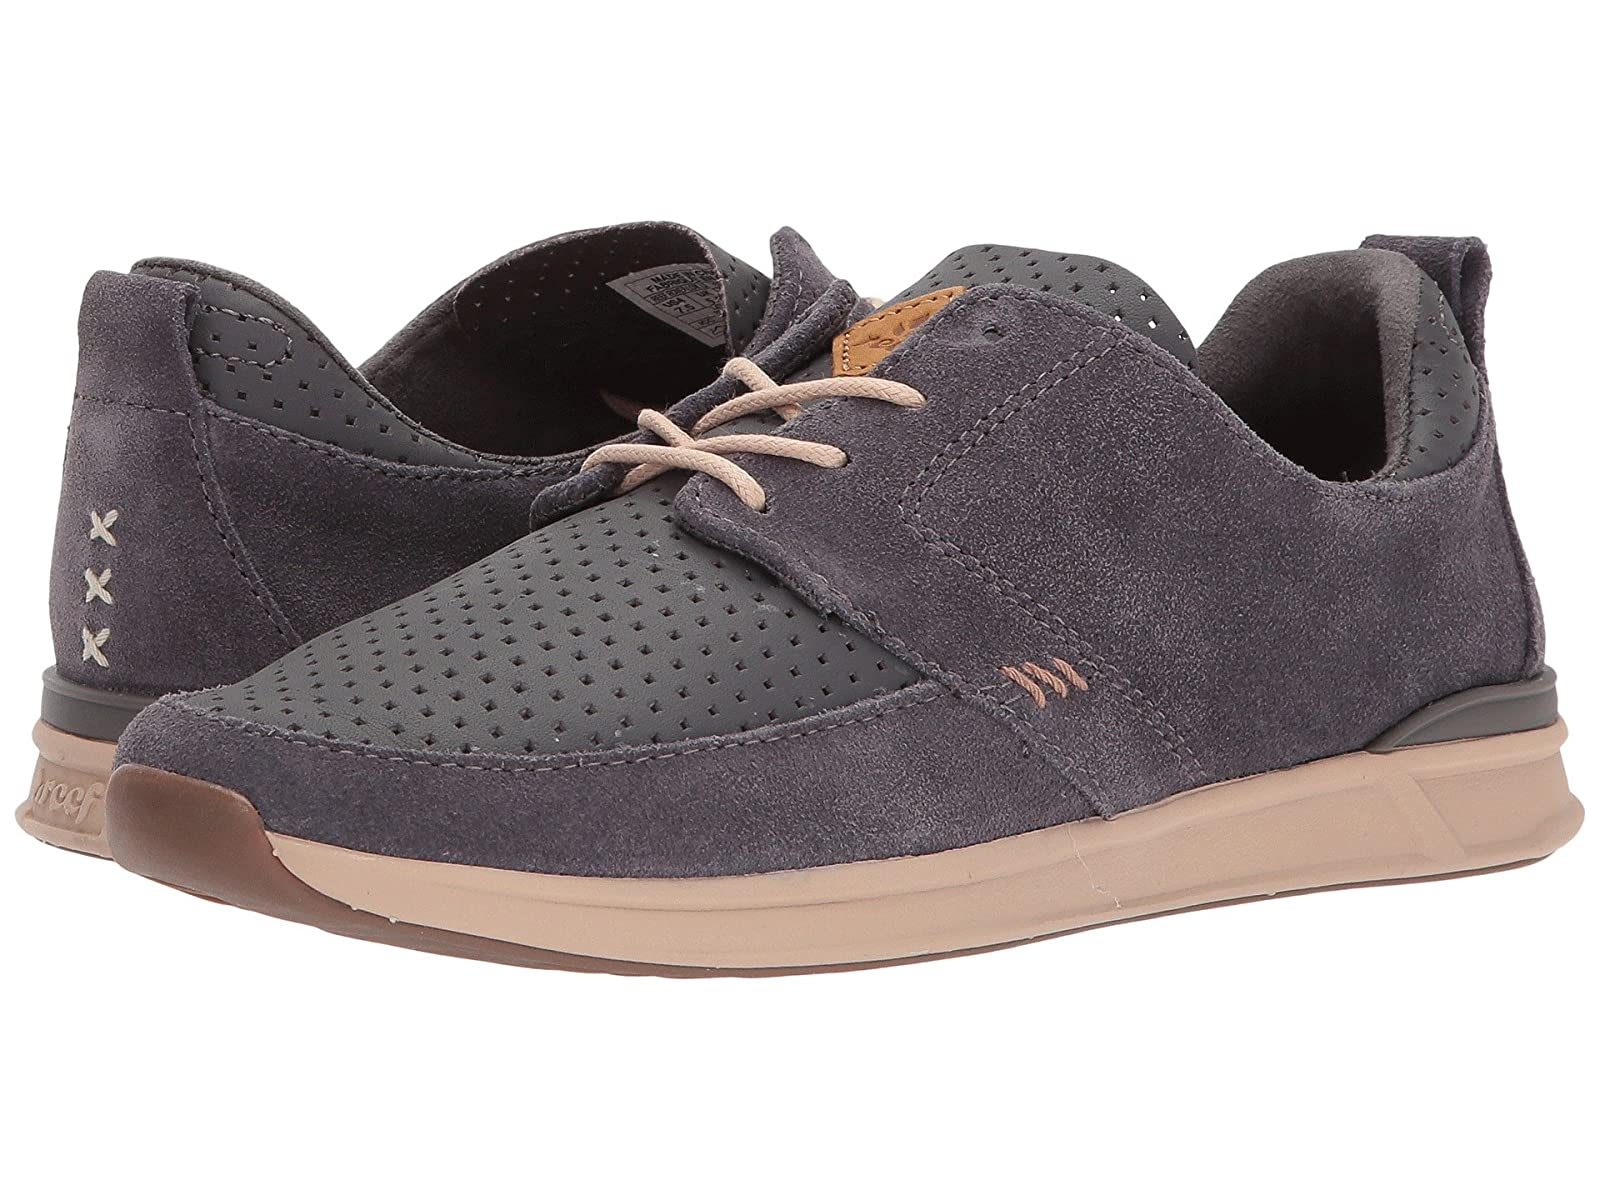 Reef Rover Low LXAtmospheric grades have affordable shoes